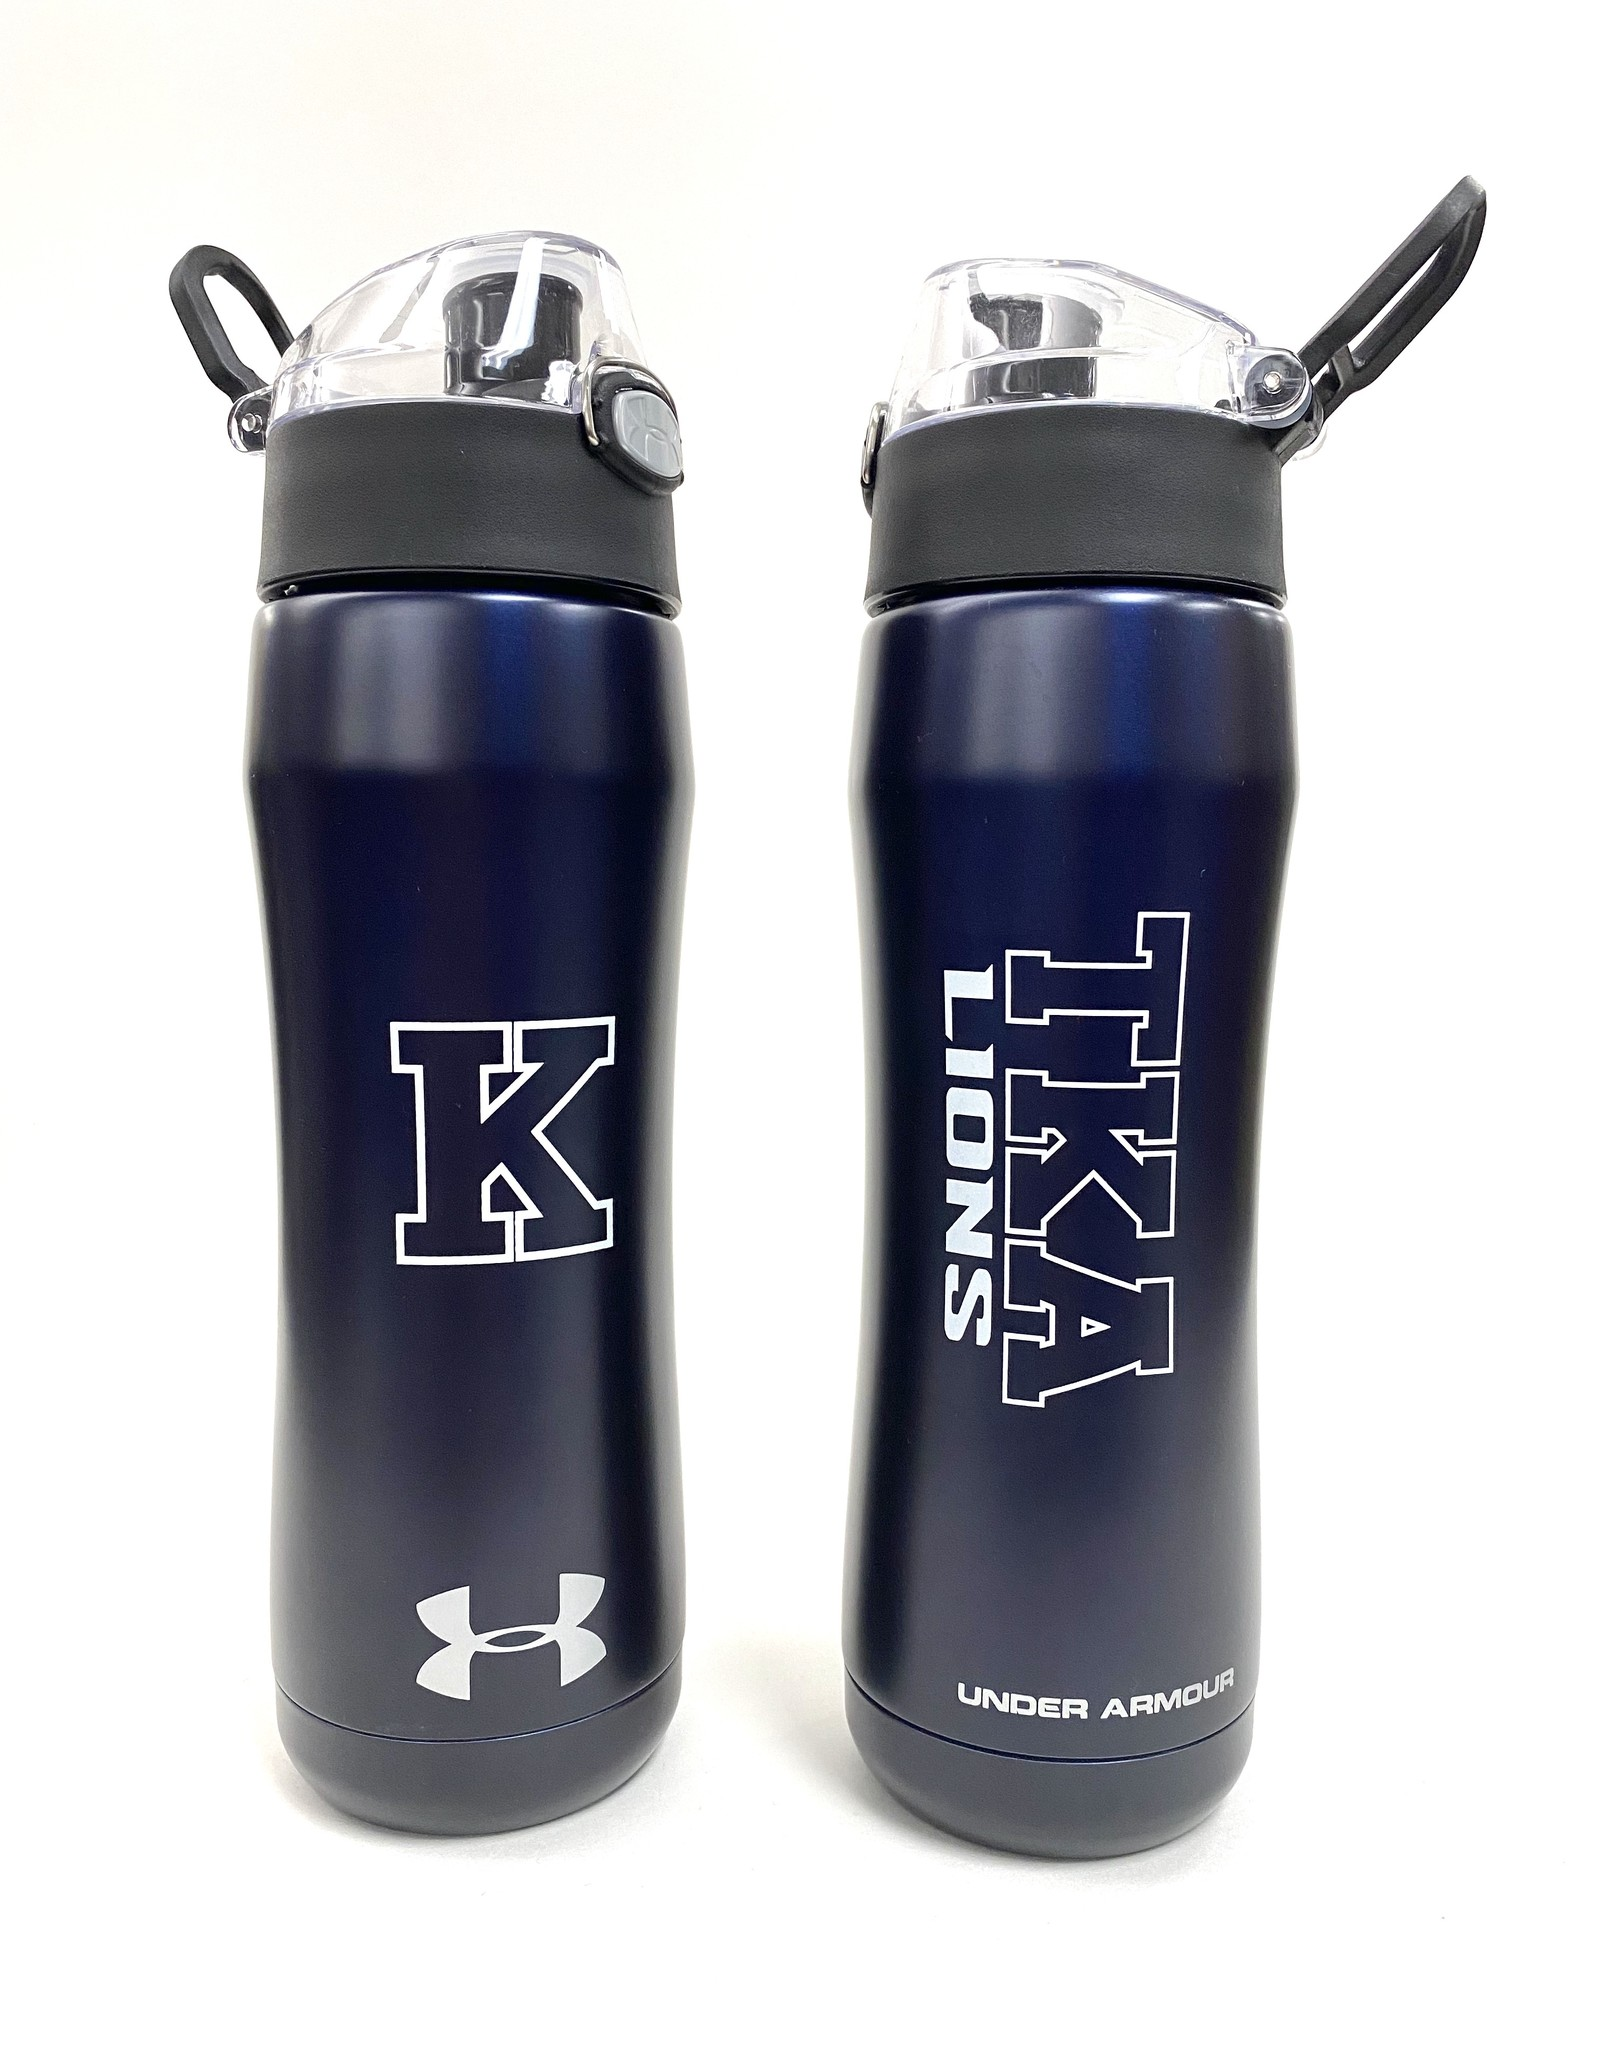 Under Armour Under Armour Metal Bottle